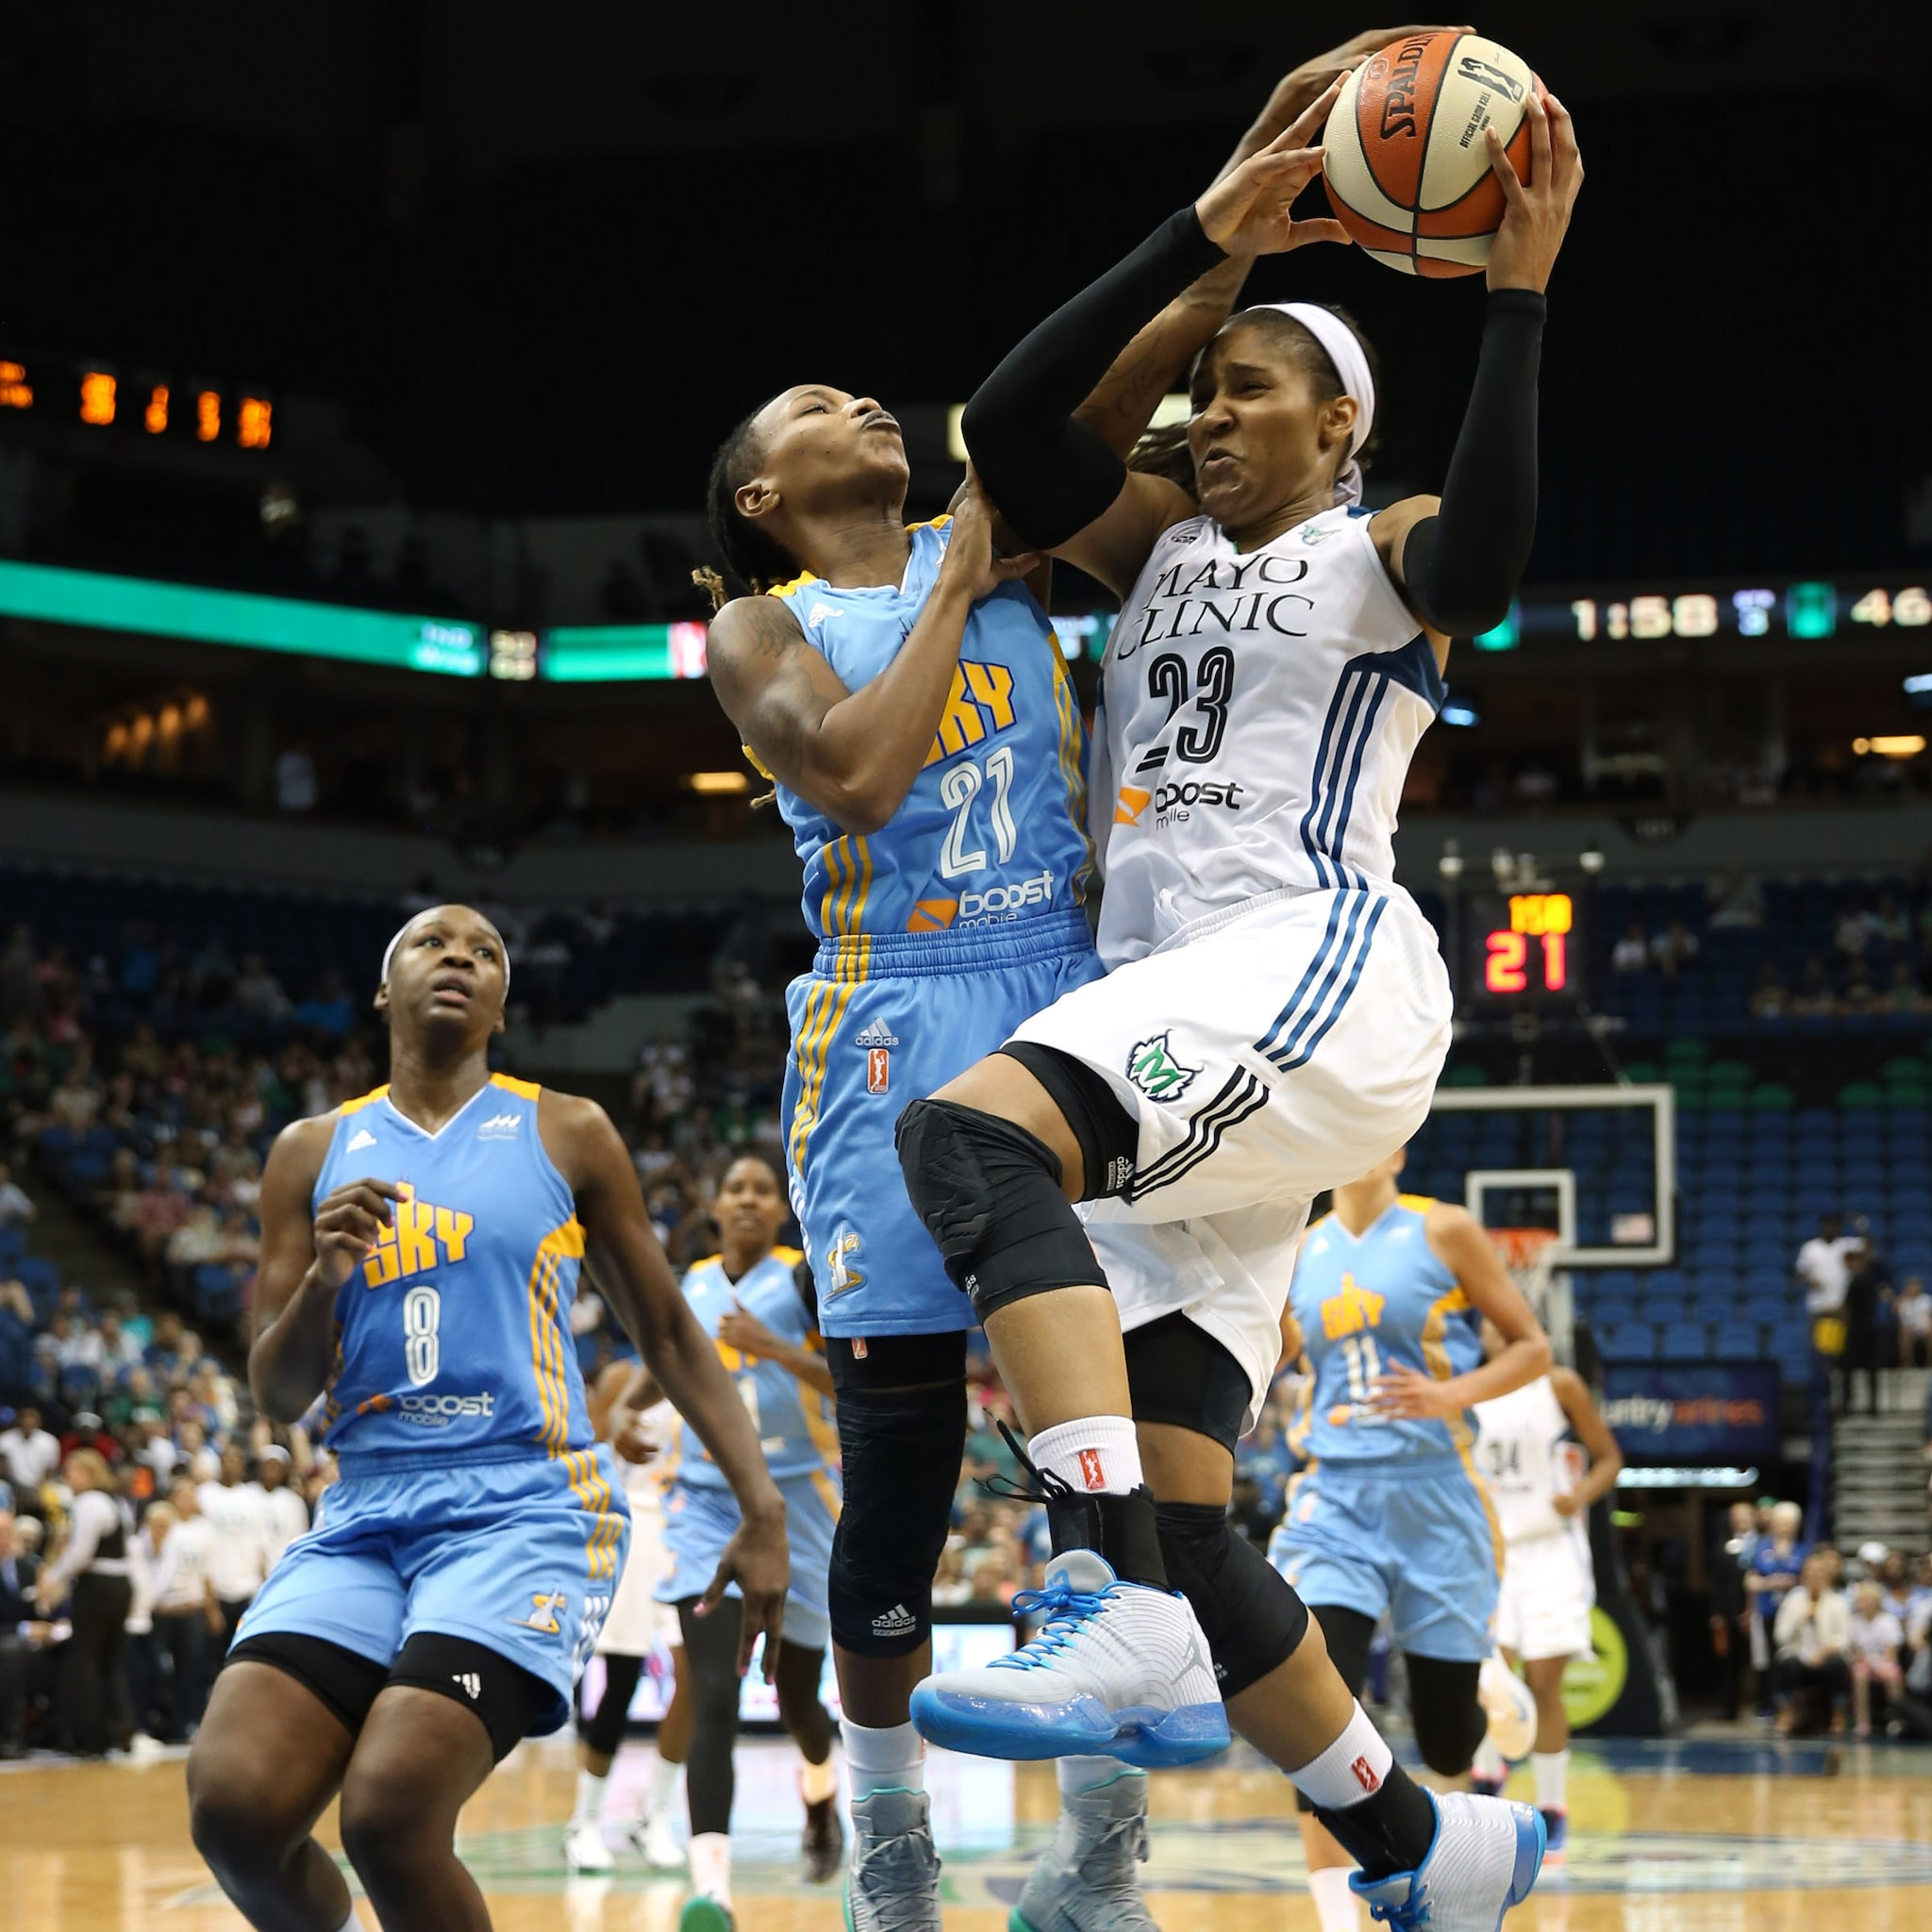 Lynx forward Maya Moore poured in a game-high 29 points, her sixth consecutive game with 20+ points